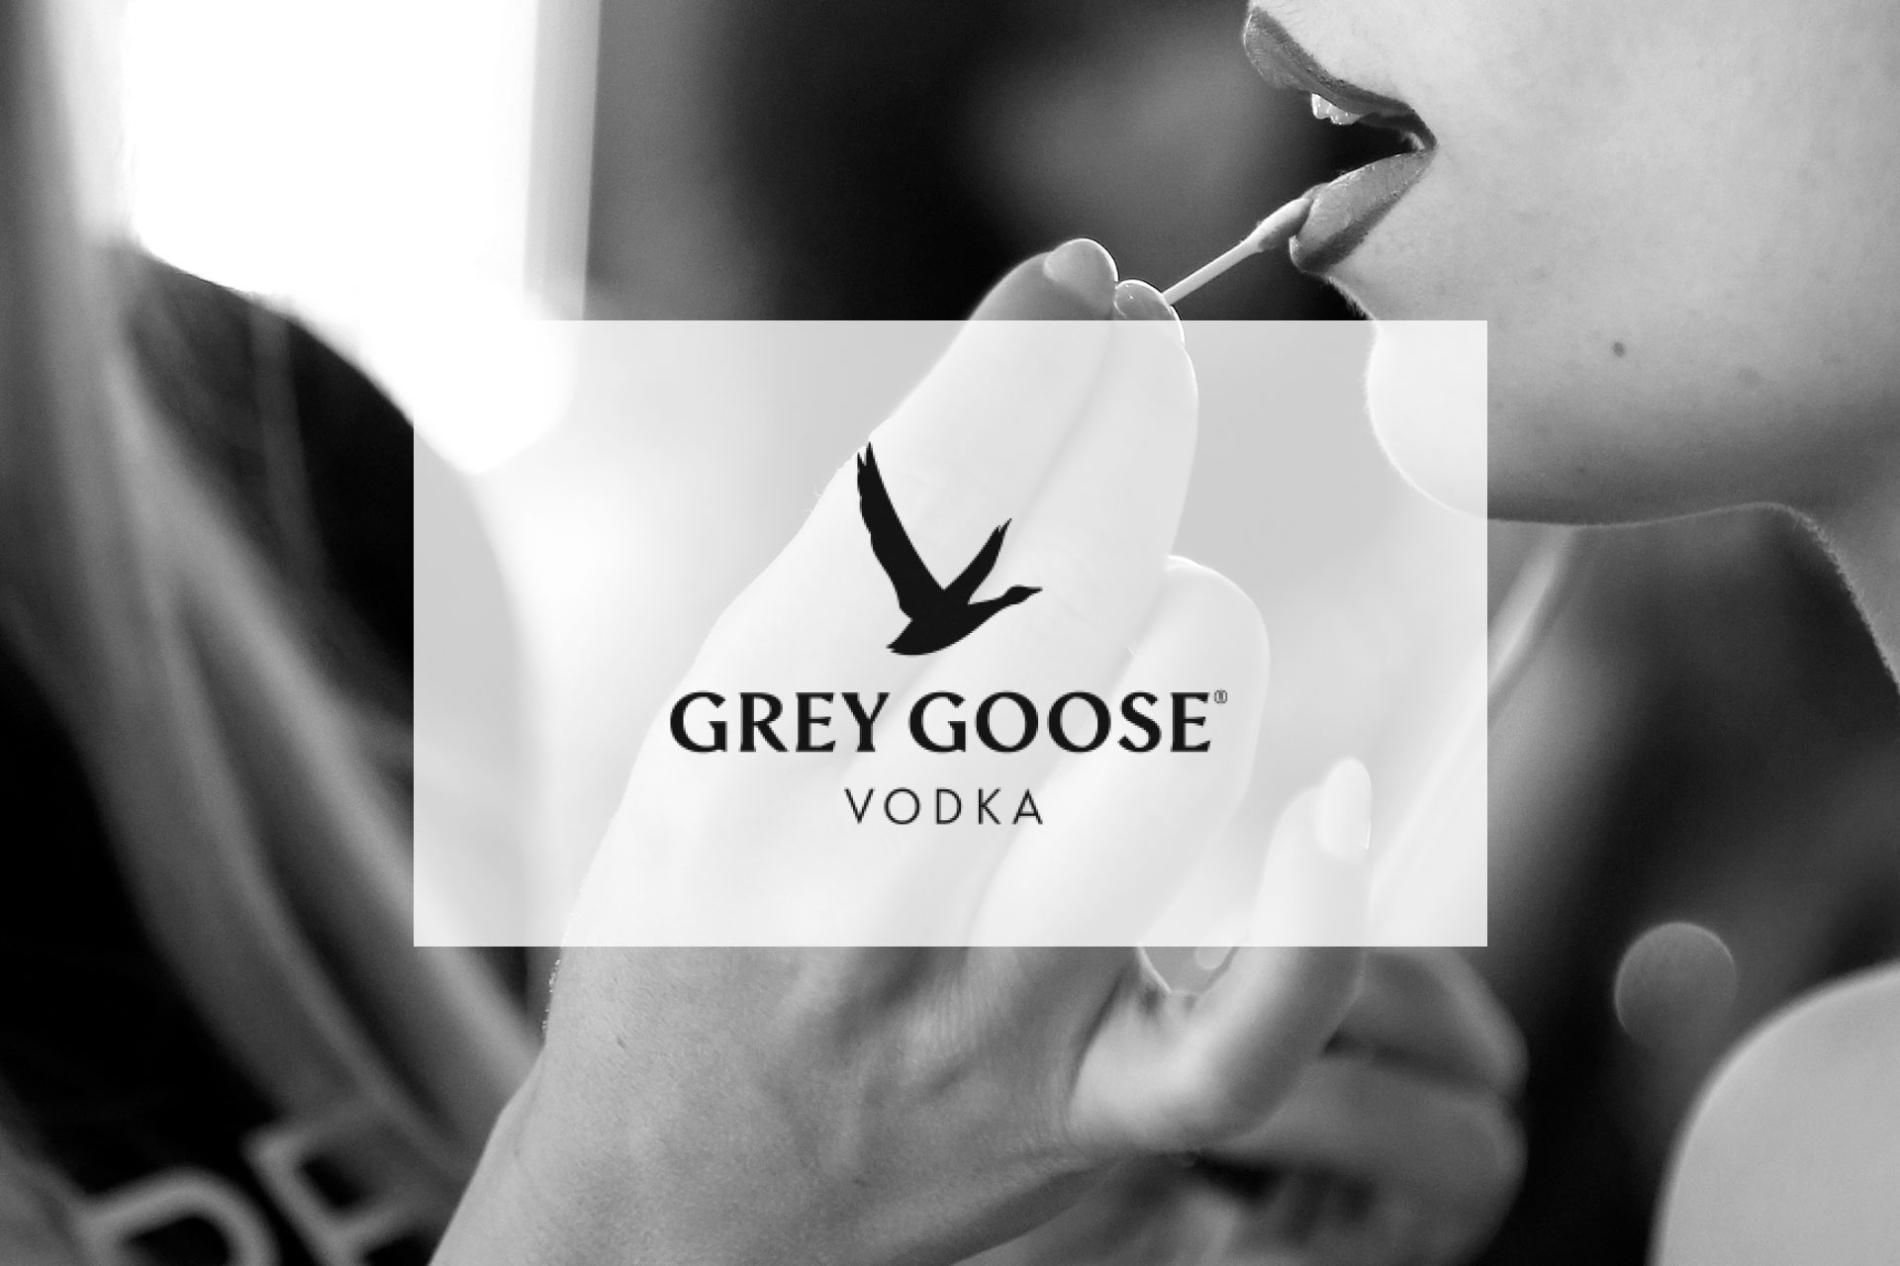 cibelesespacio Grey Goose vodka